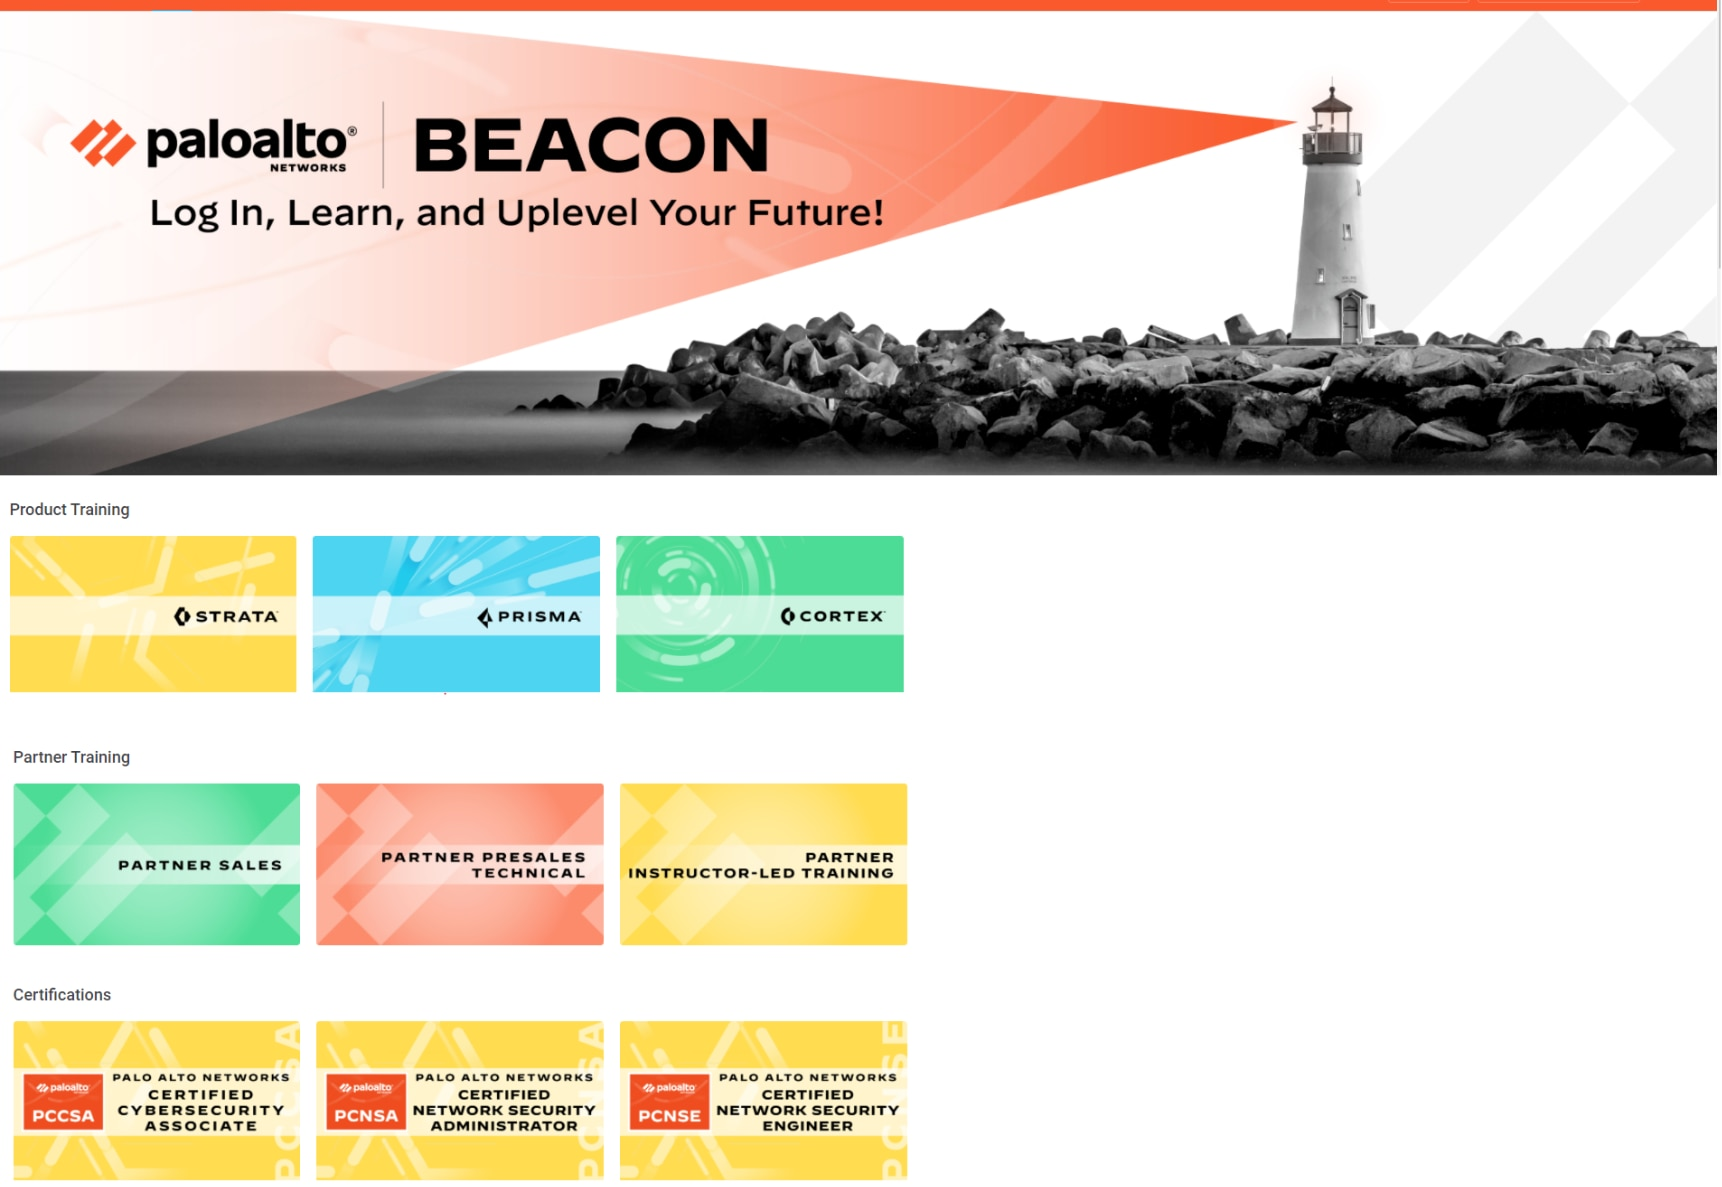 , Log in, Learn, and Uplevel Your Future With Beacon